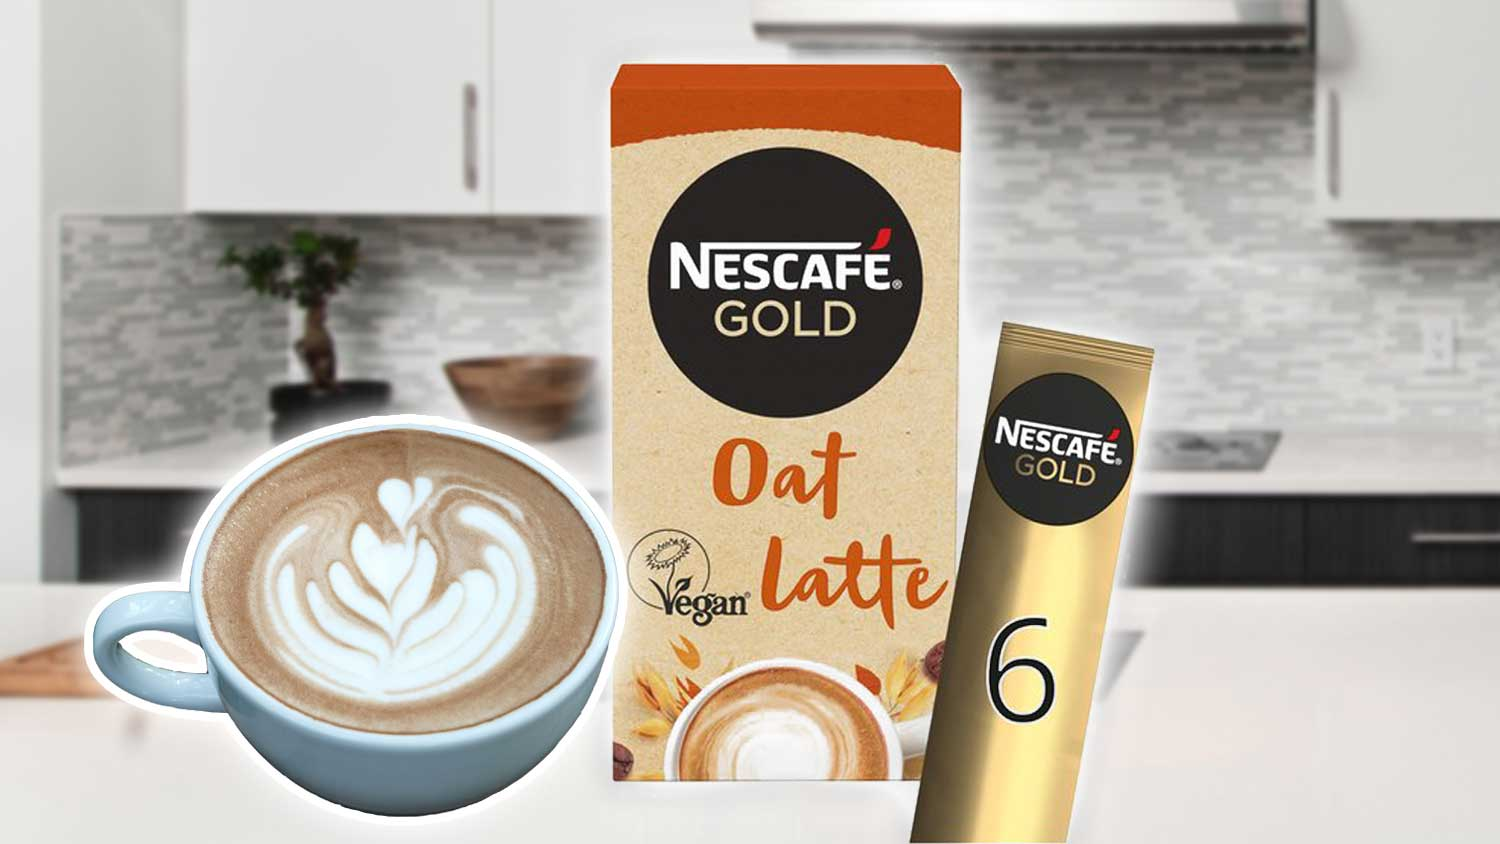 Nescafé Just Launched Dairy-Free Oat, Almond, and Coconut Lattes